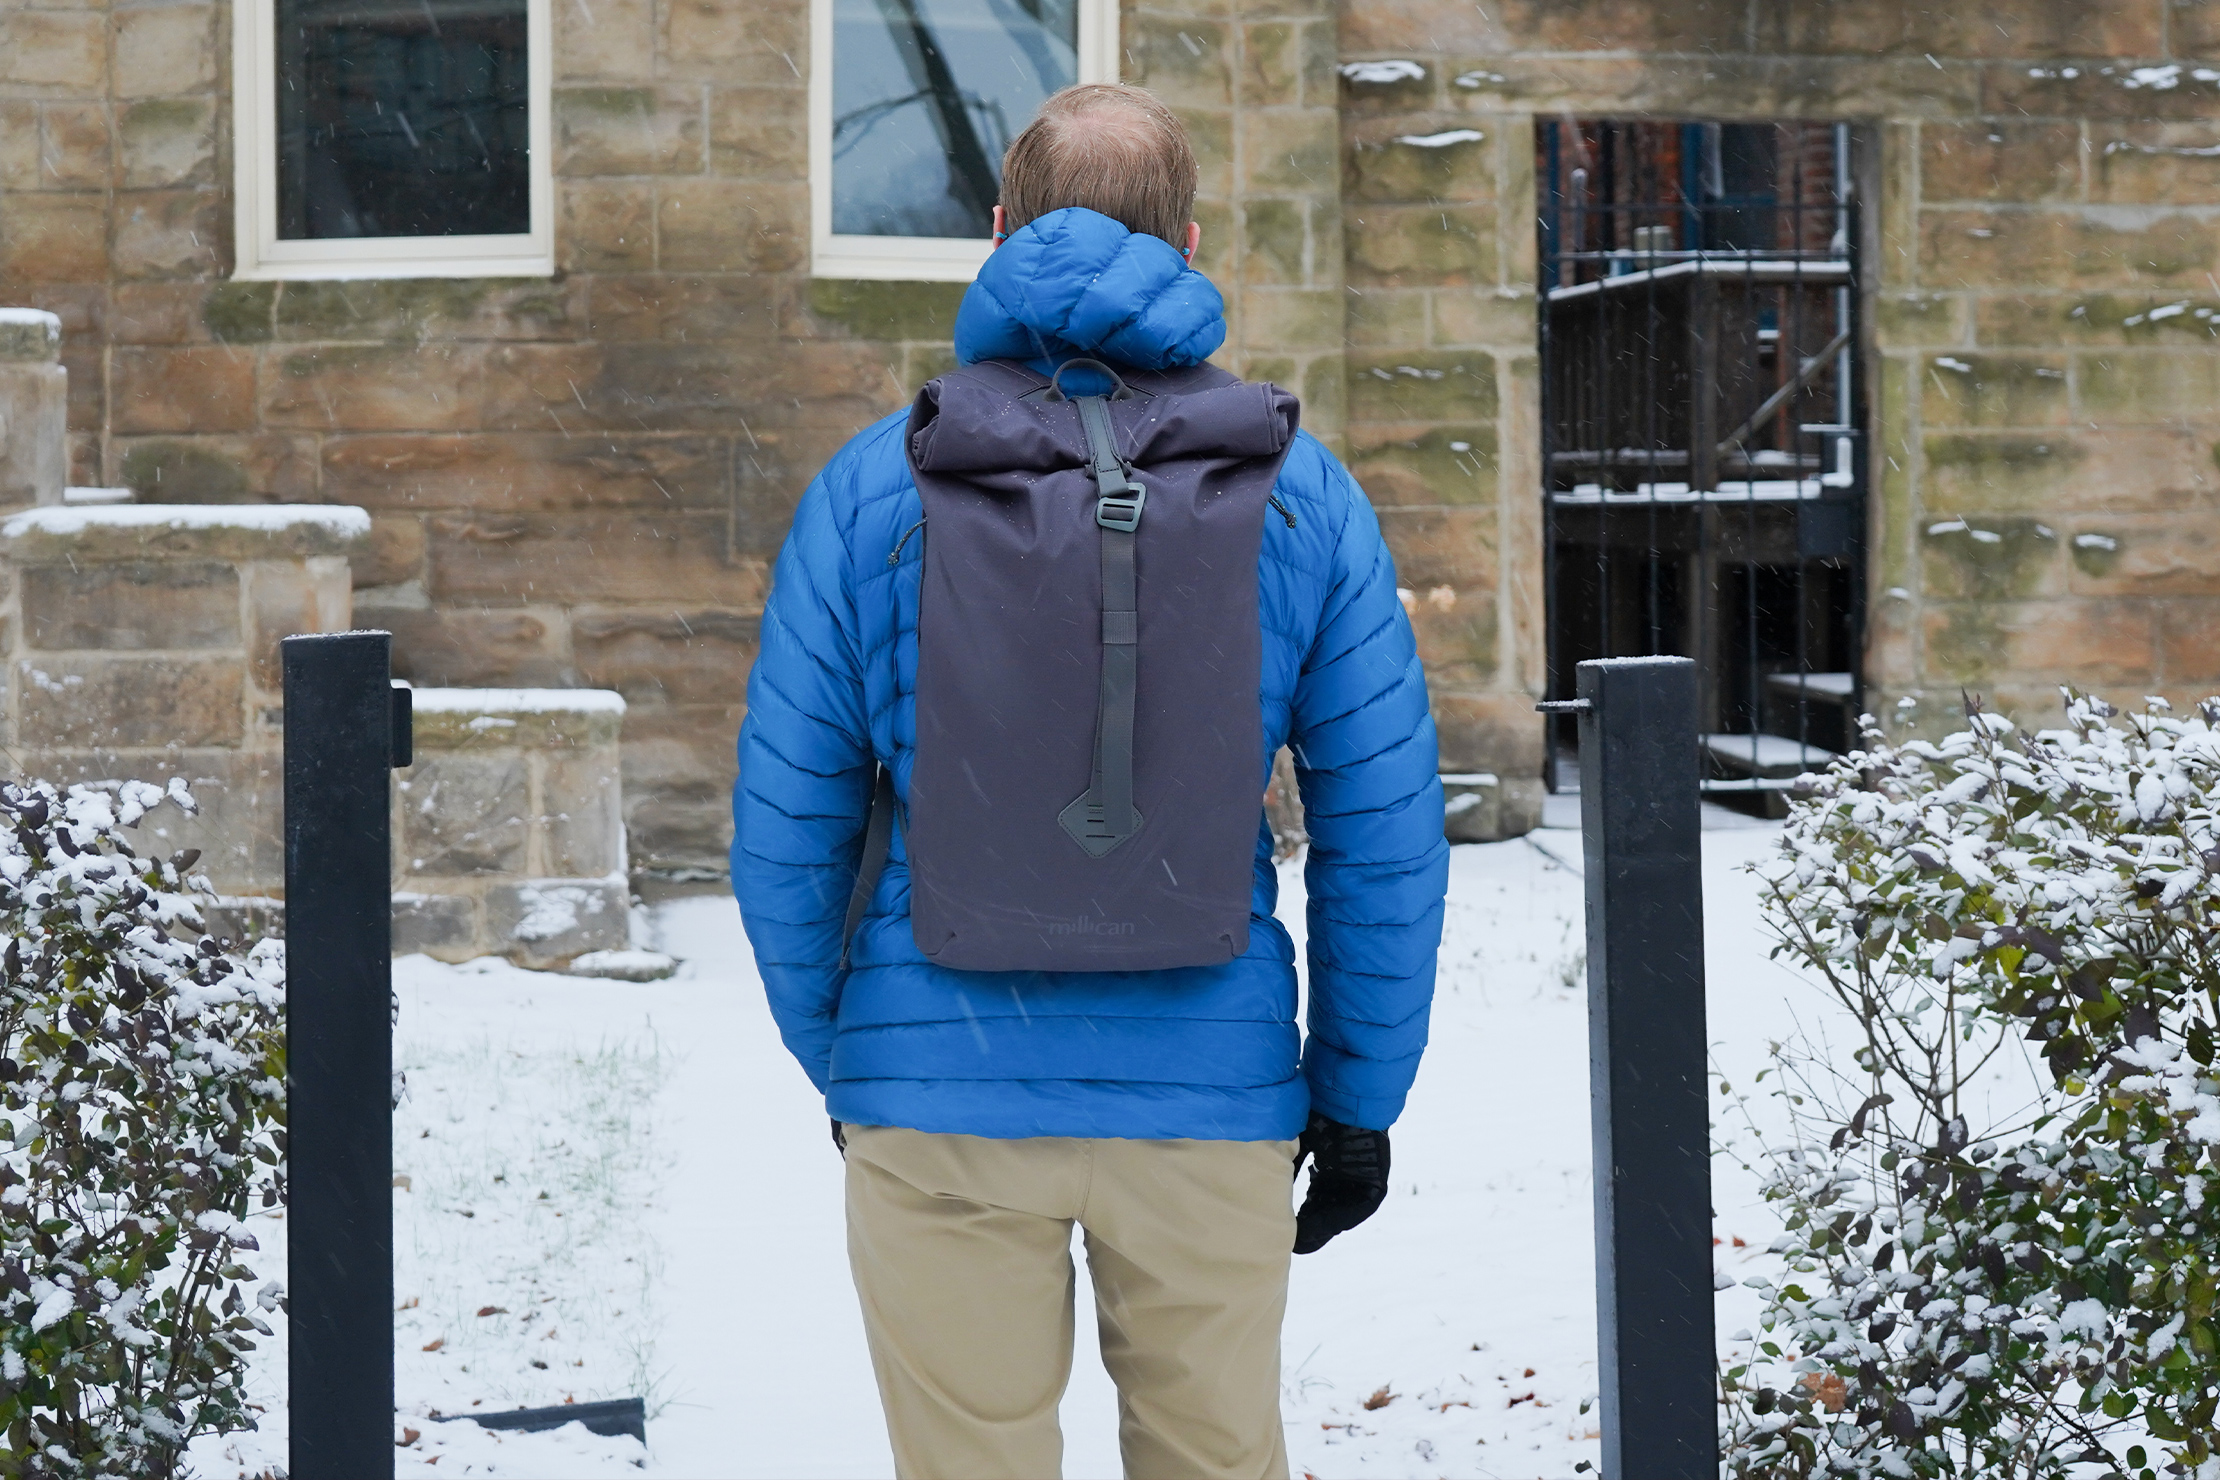 Millican Smith Roll Pack 18L   Carrying a loaded pack